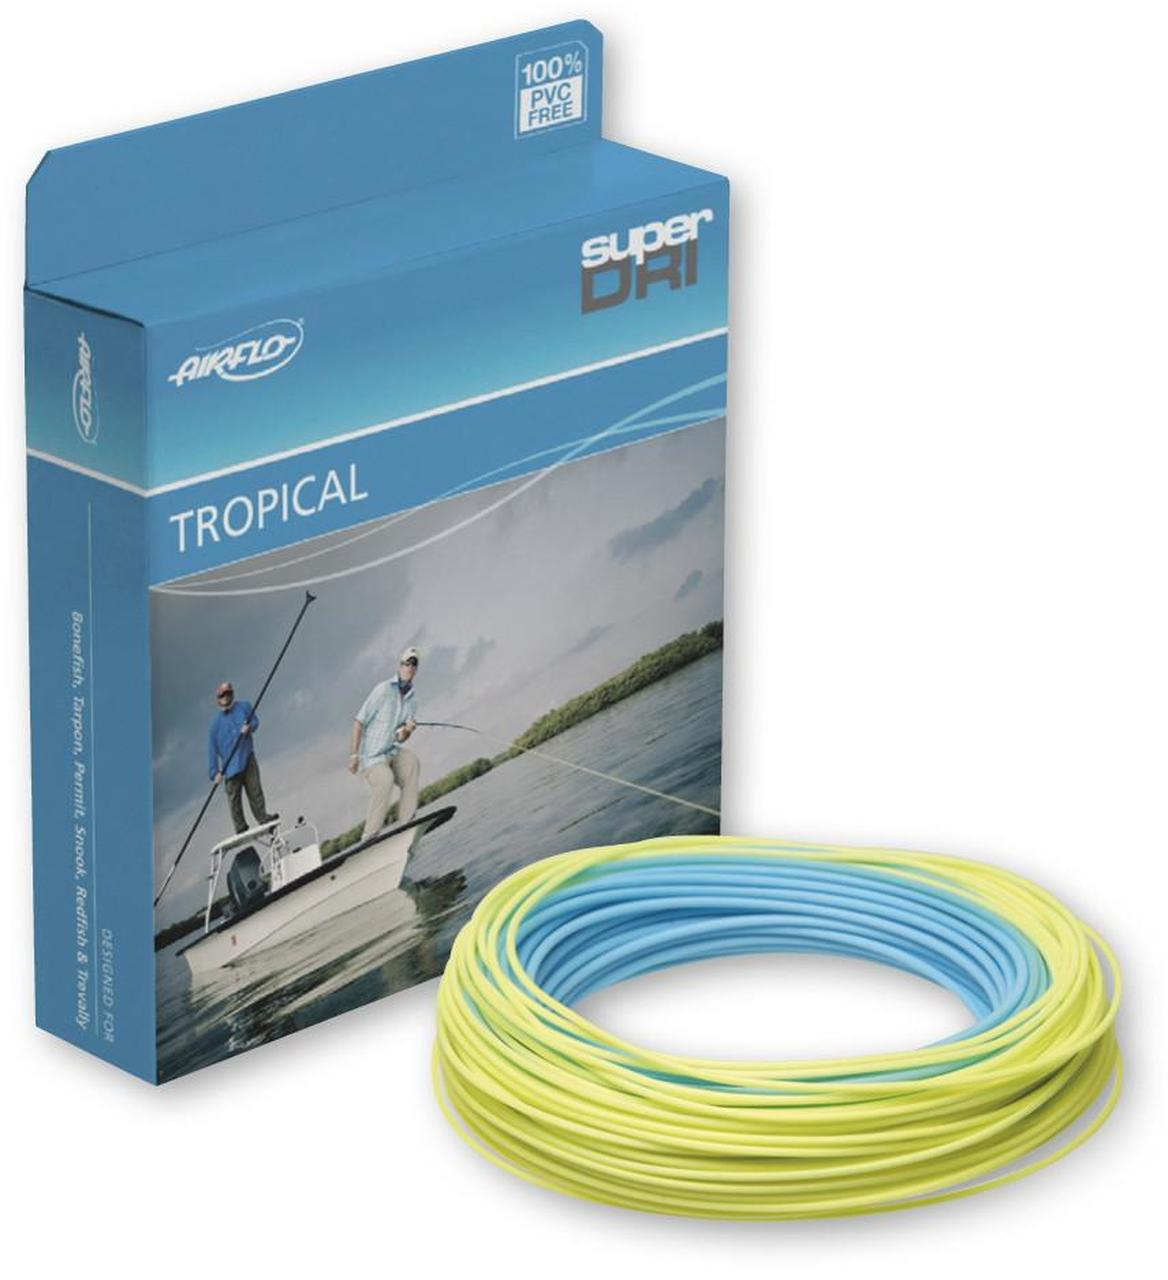 Airflo Super-DRI Tropical Punch Fly Line